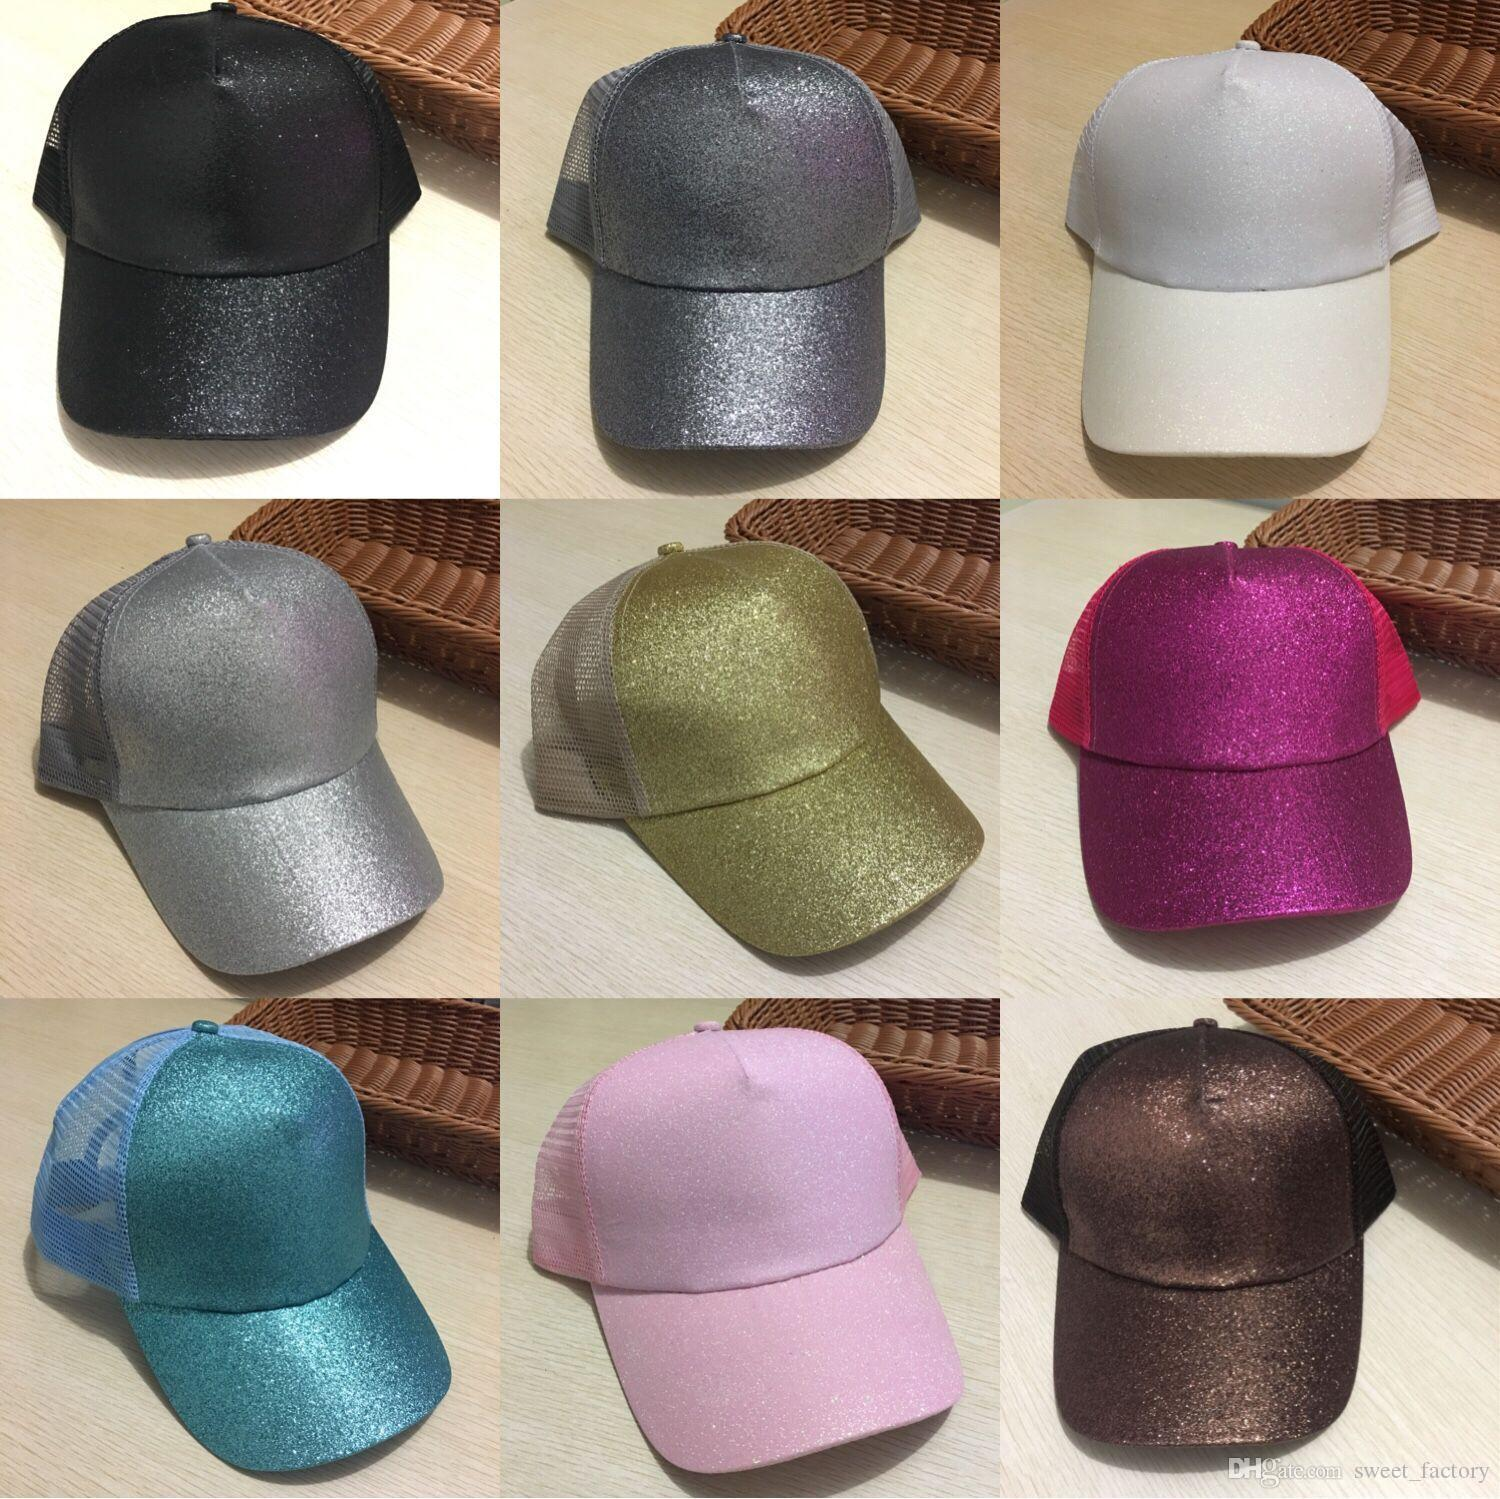 ... Hats By Brand - Hats and Caps - Village Hat Shop innovative design  78381 a1976 ... 9d5ef785632